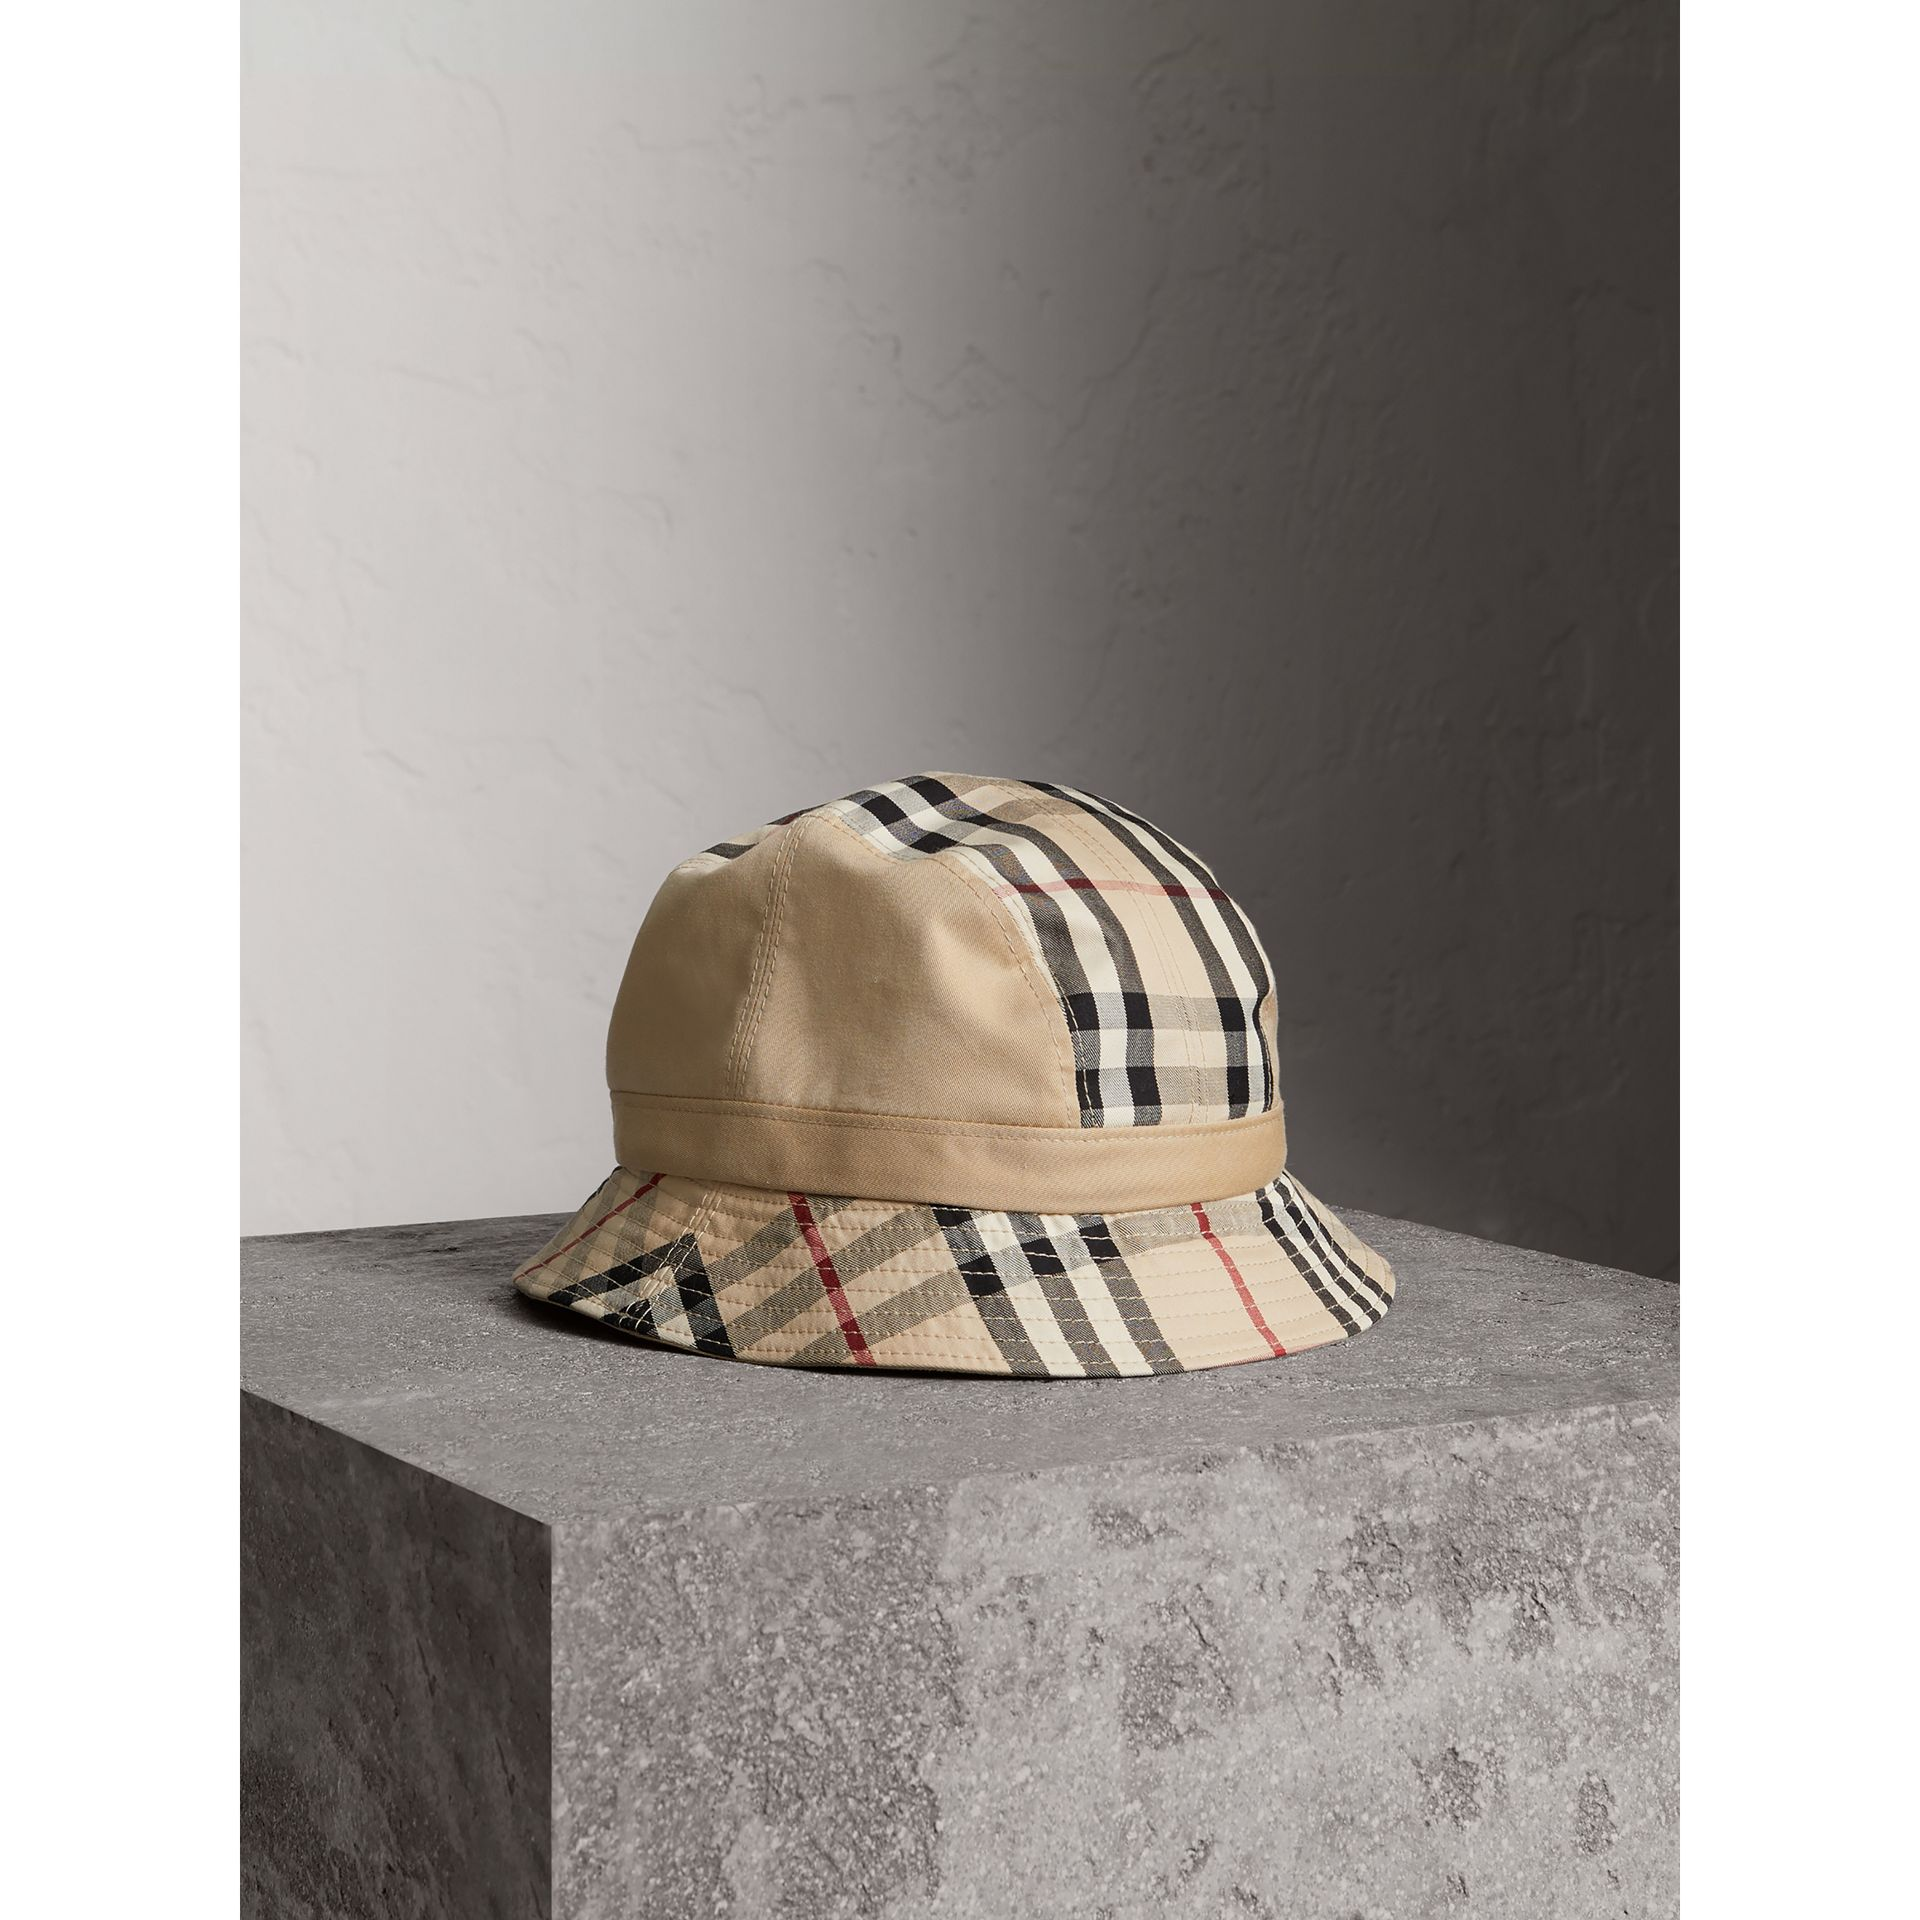 b1eb2344bb7 Gosha x Burberry Bucket Hat in Honey - Men